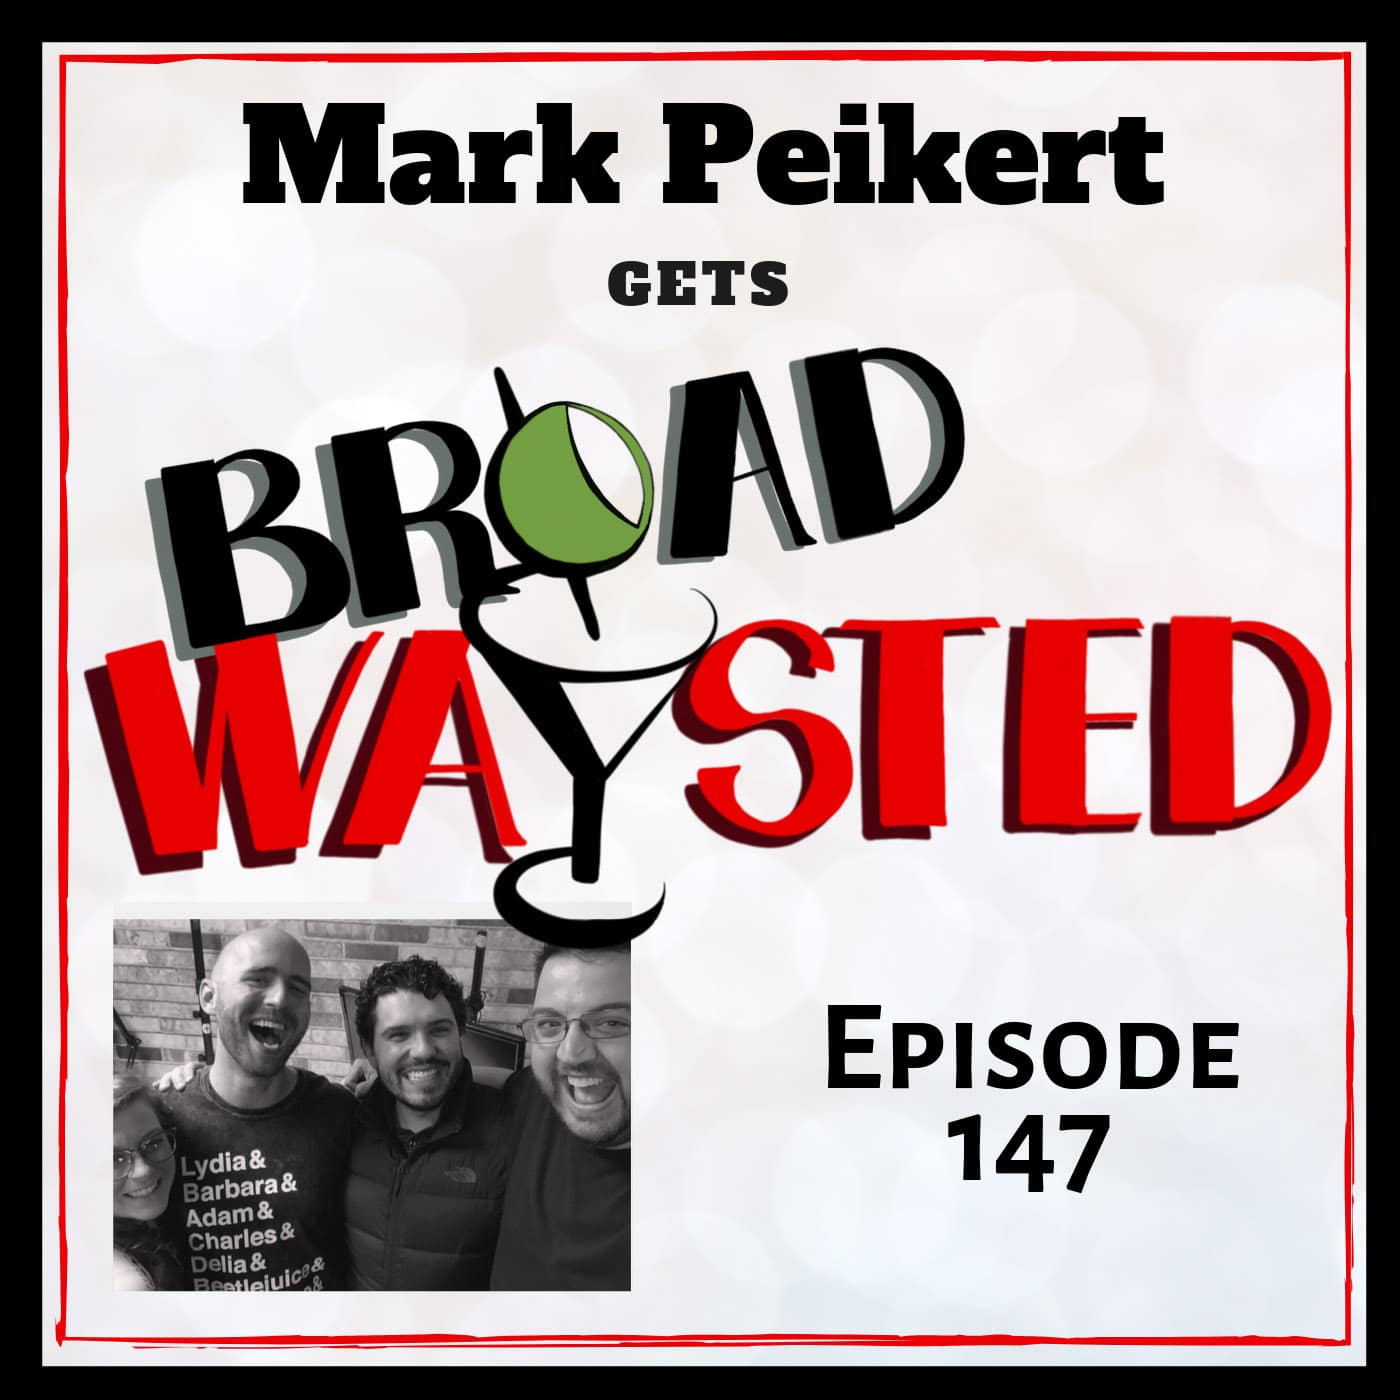 Broadwaysted Ep 147 Mark Peikart